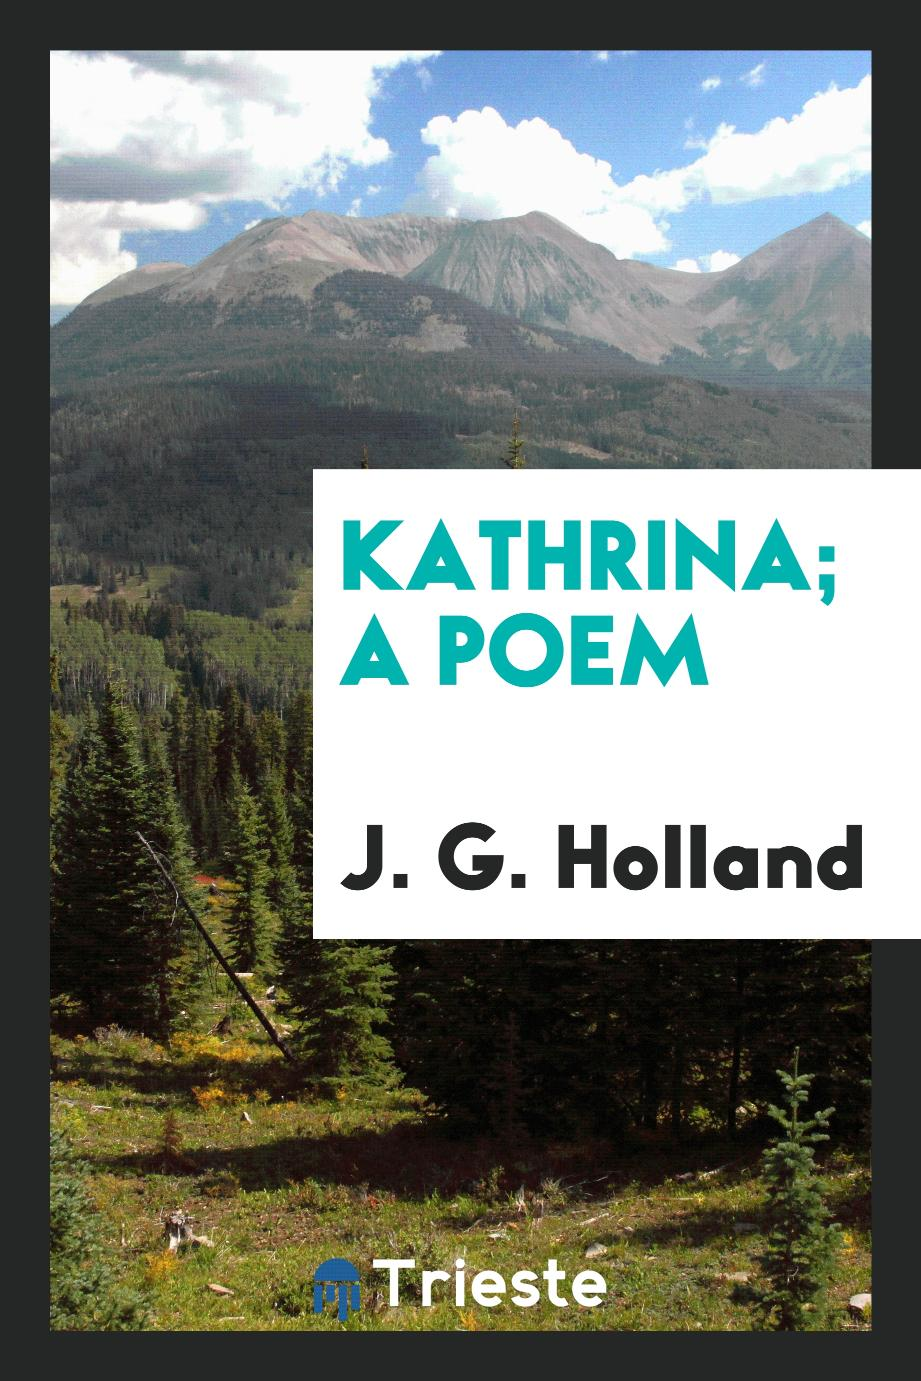 J. G. Holland - Kathrina; a poem